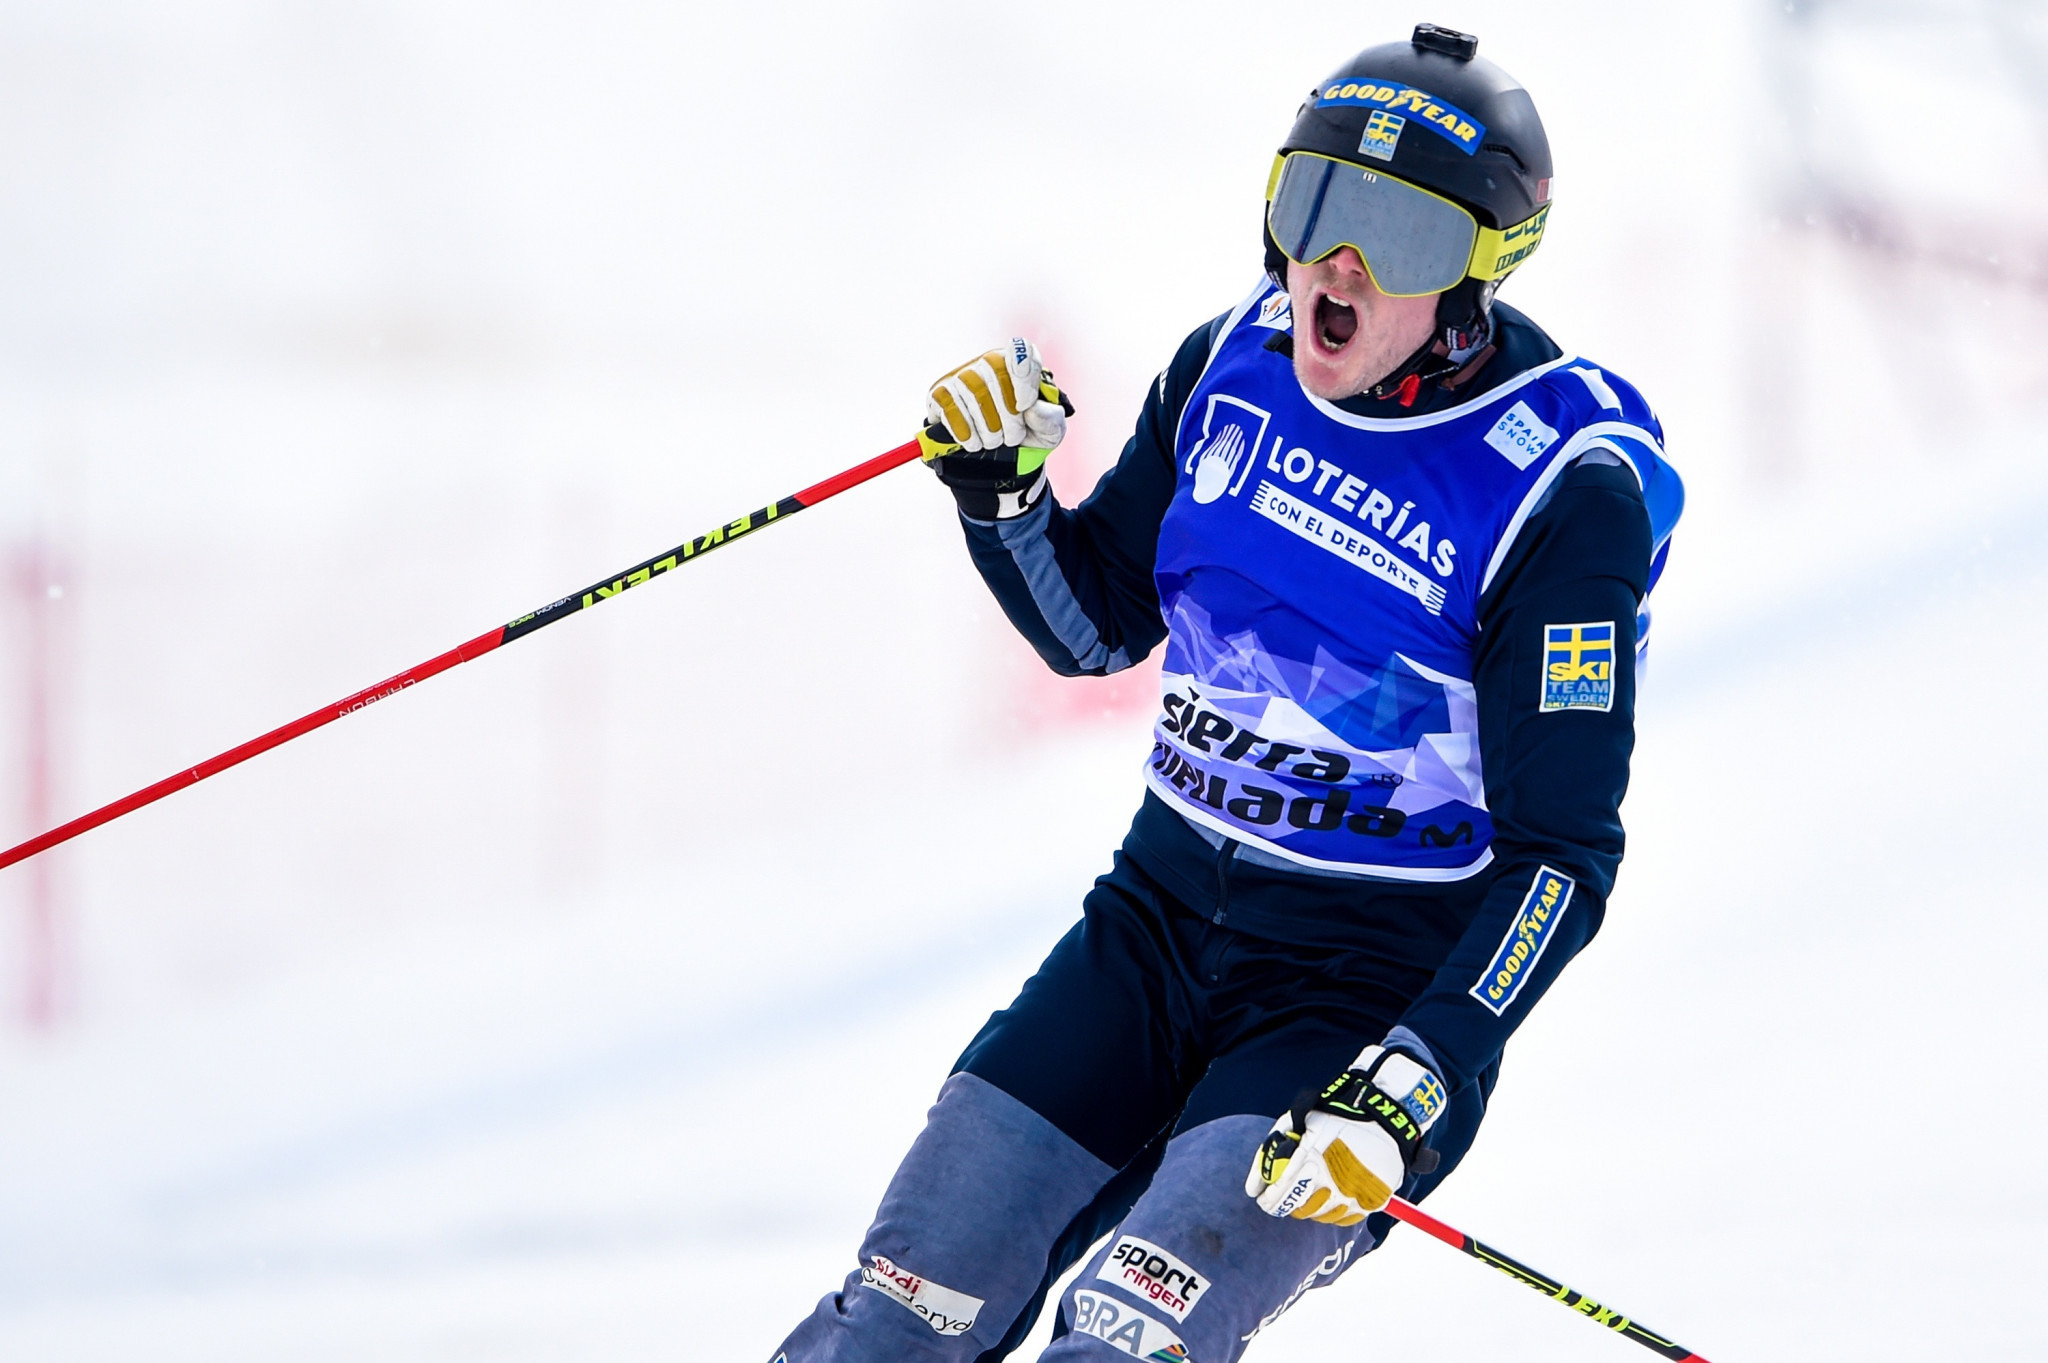 Home favourites dominate first day of qualification at FIS Ski Cross World Cup in Idre Fjäll